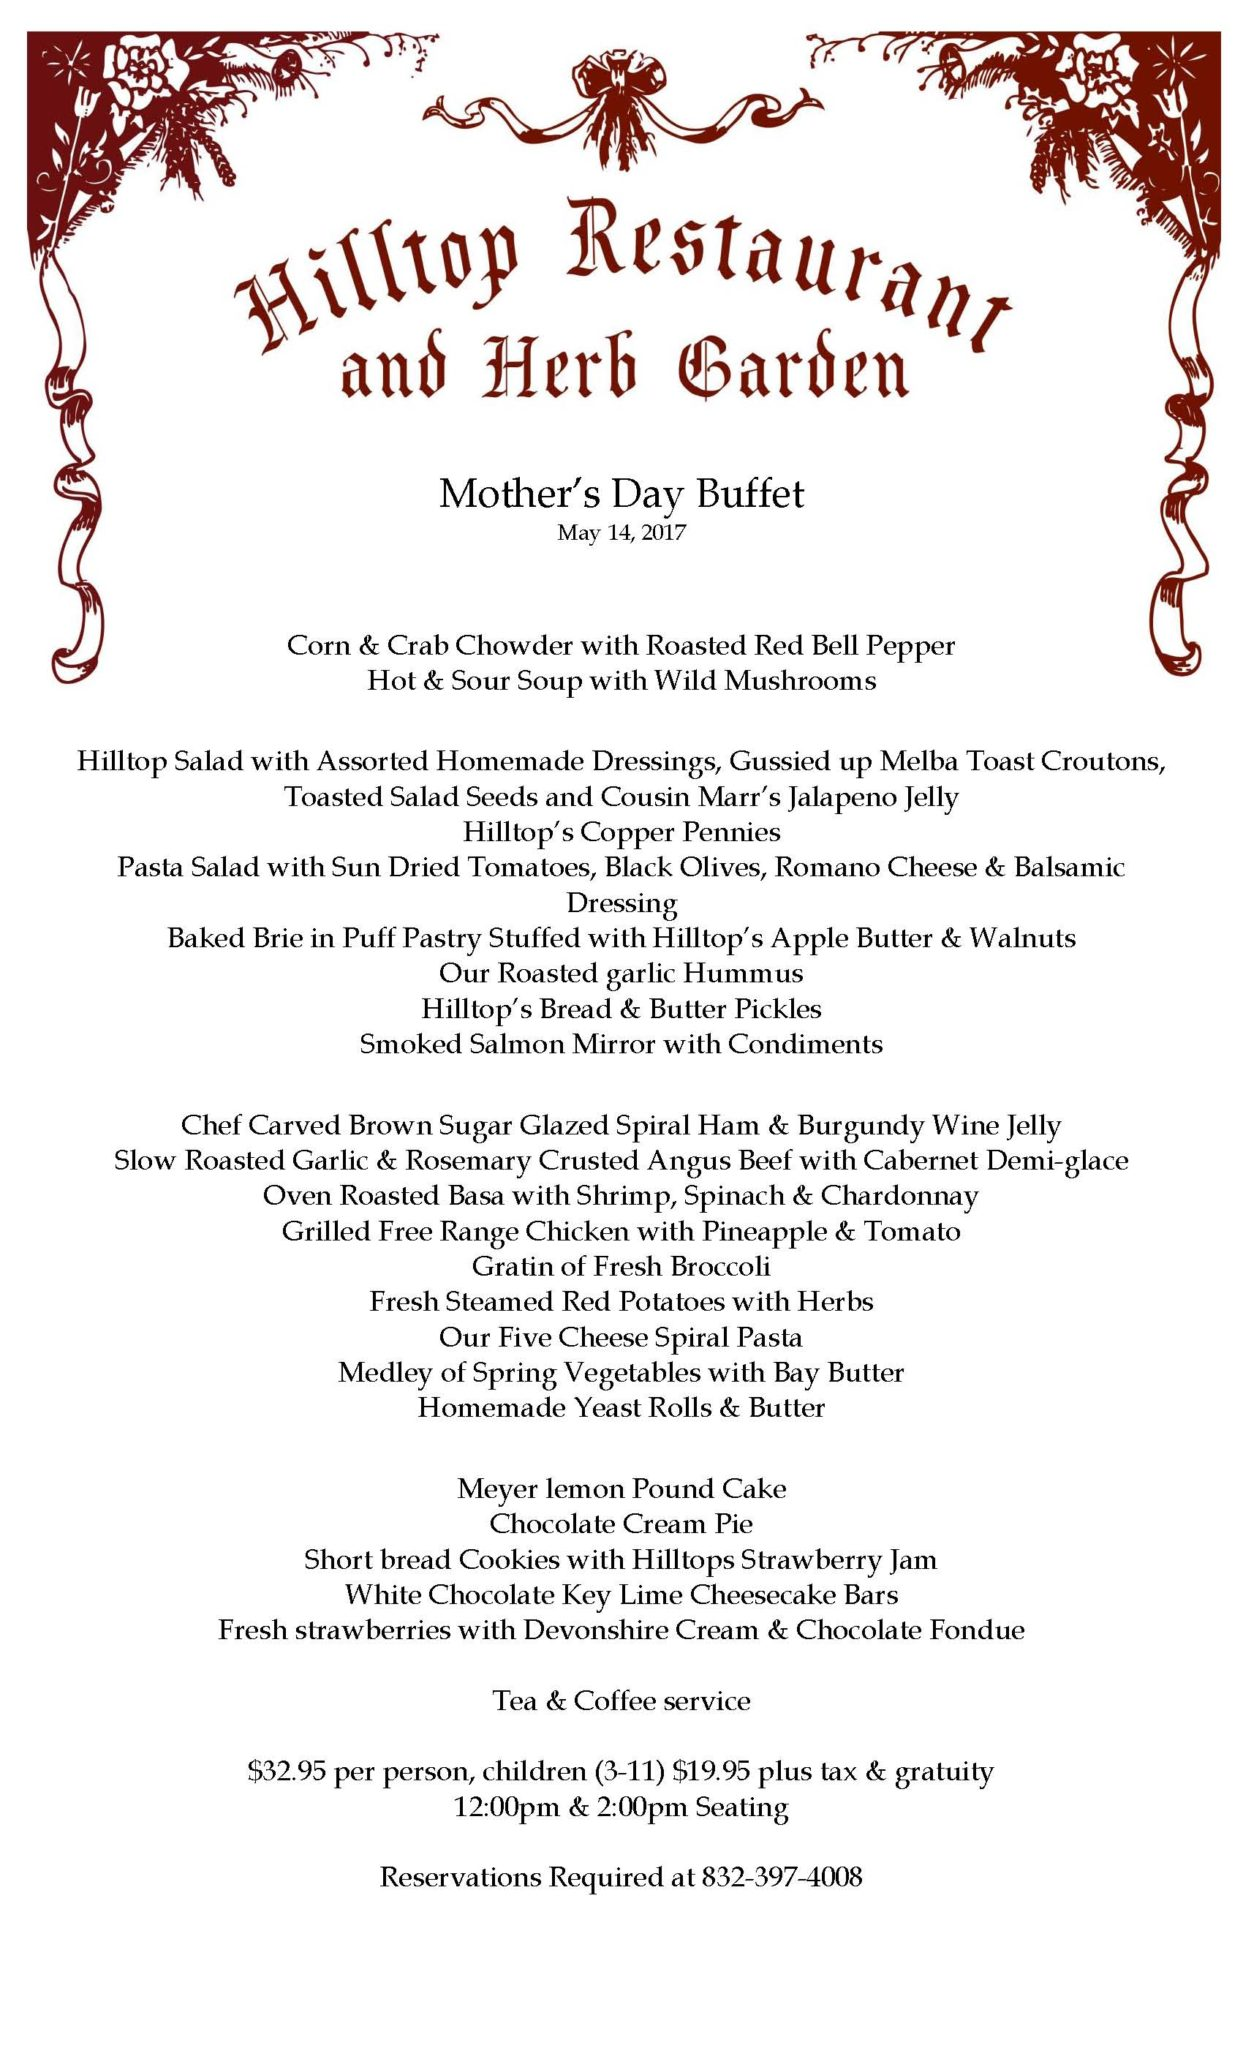 Mother's Day Buffet Menu